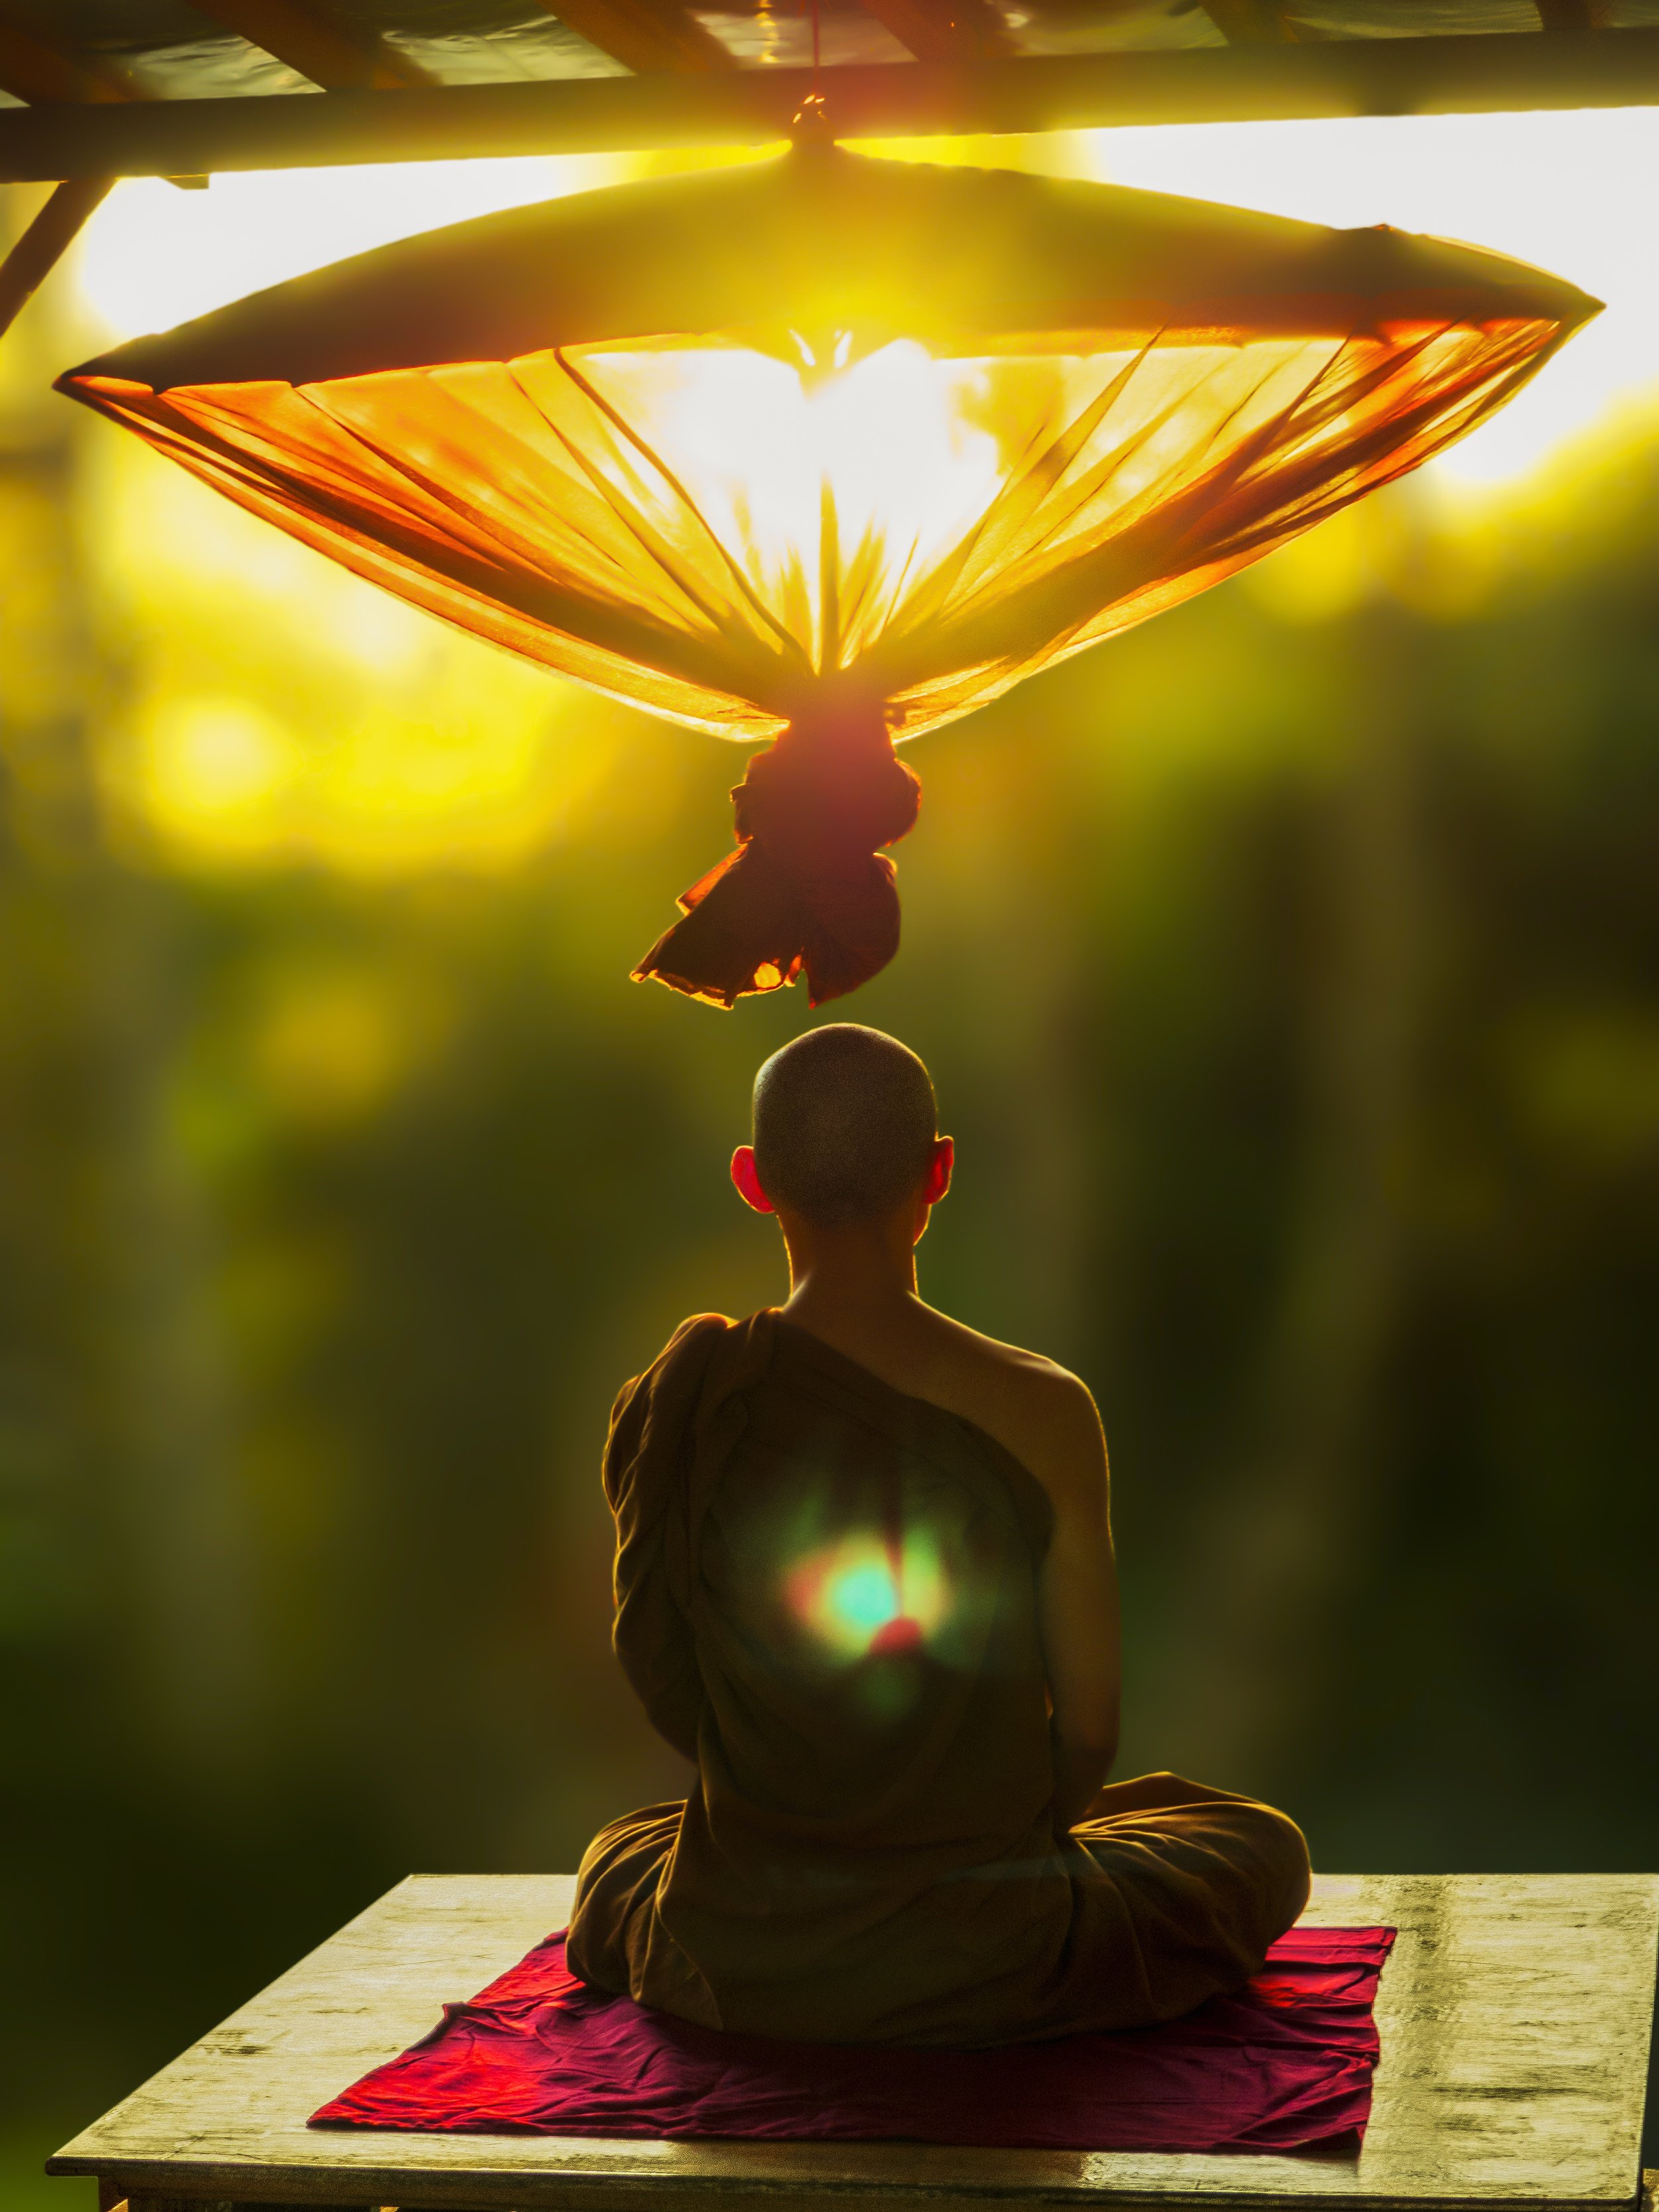 Eastern Philosophies & Practices - My practice is founded in Vedic arts and sciences, including Classical Yoga, Ayurveda and Mahayana Buddhism. I am a student of the Tao, studying QiGong, and I am also a Reiki Master Teacher since 1993.